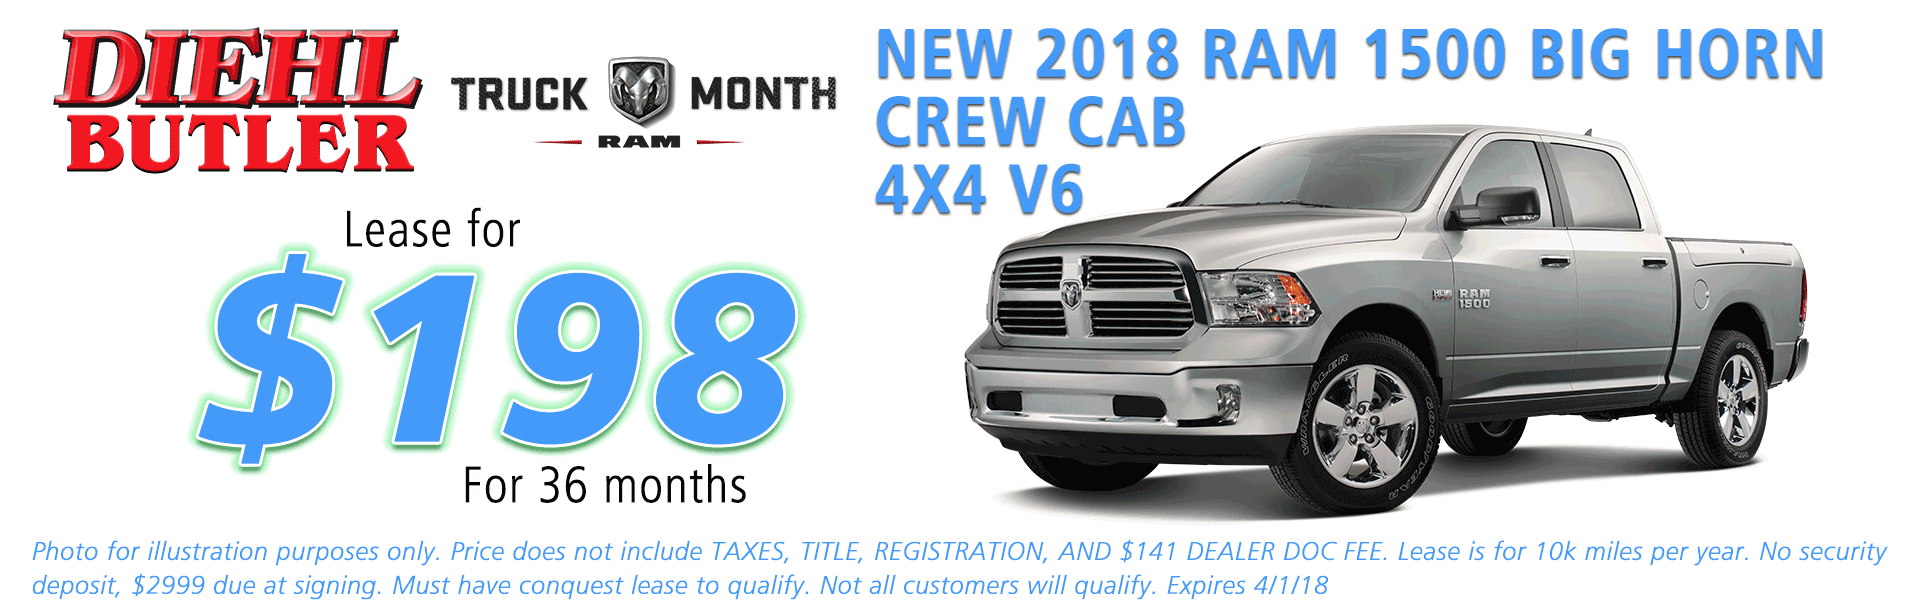 NEW 2018 RAM 1500 BIG HORN CREW CAB 4X4 diehl chrysler jeep dodge ram serving butler cranberry mars saxonburg and pittsburgh